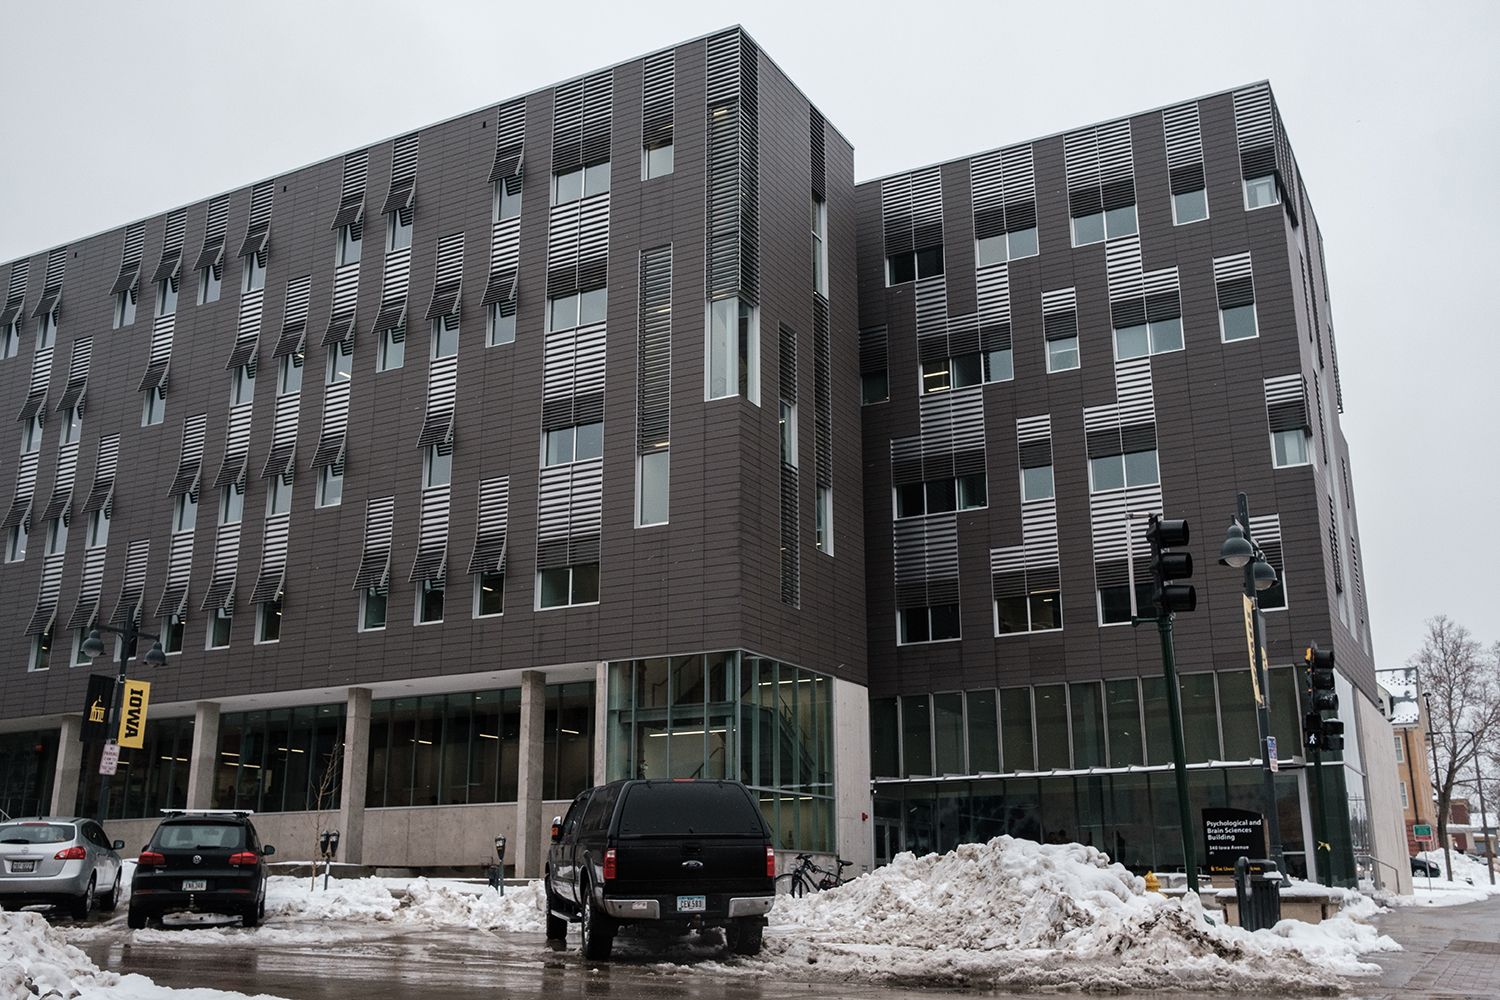 The Psychological and Brain Sciences building is seen on Friday, January 24, 2020.